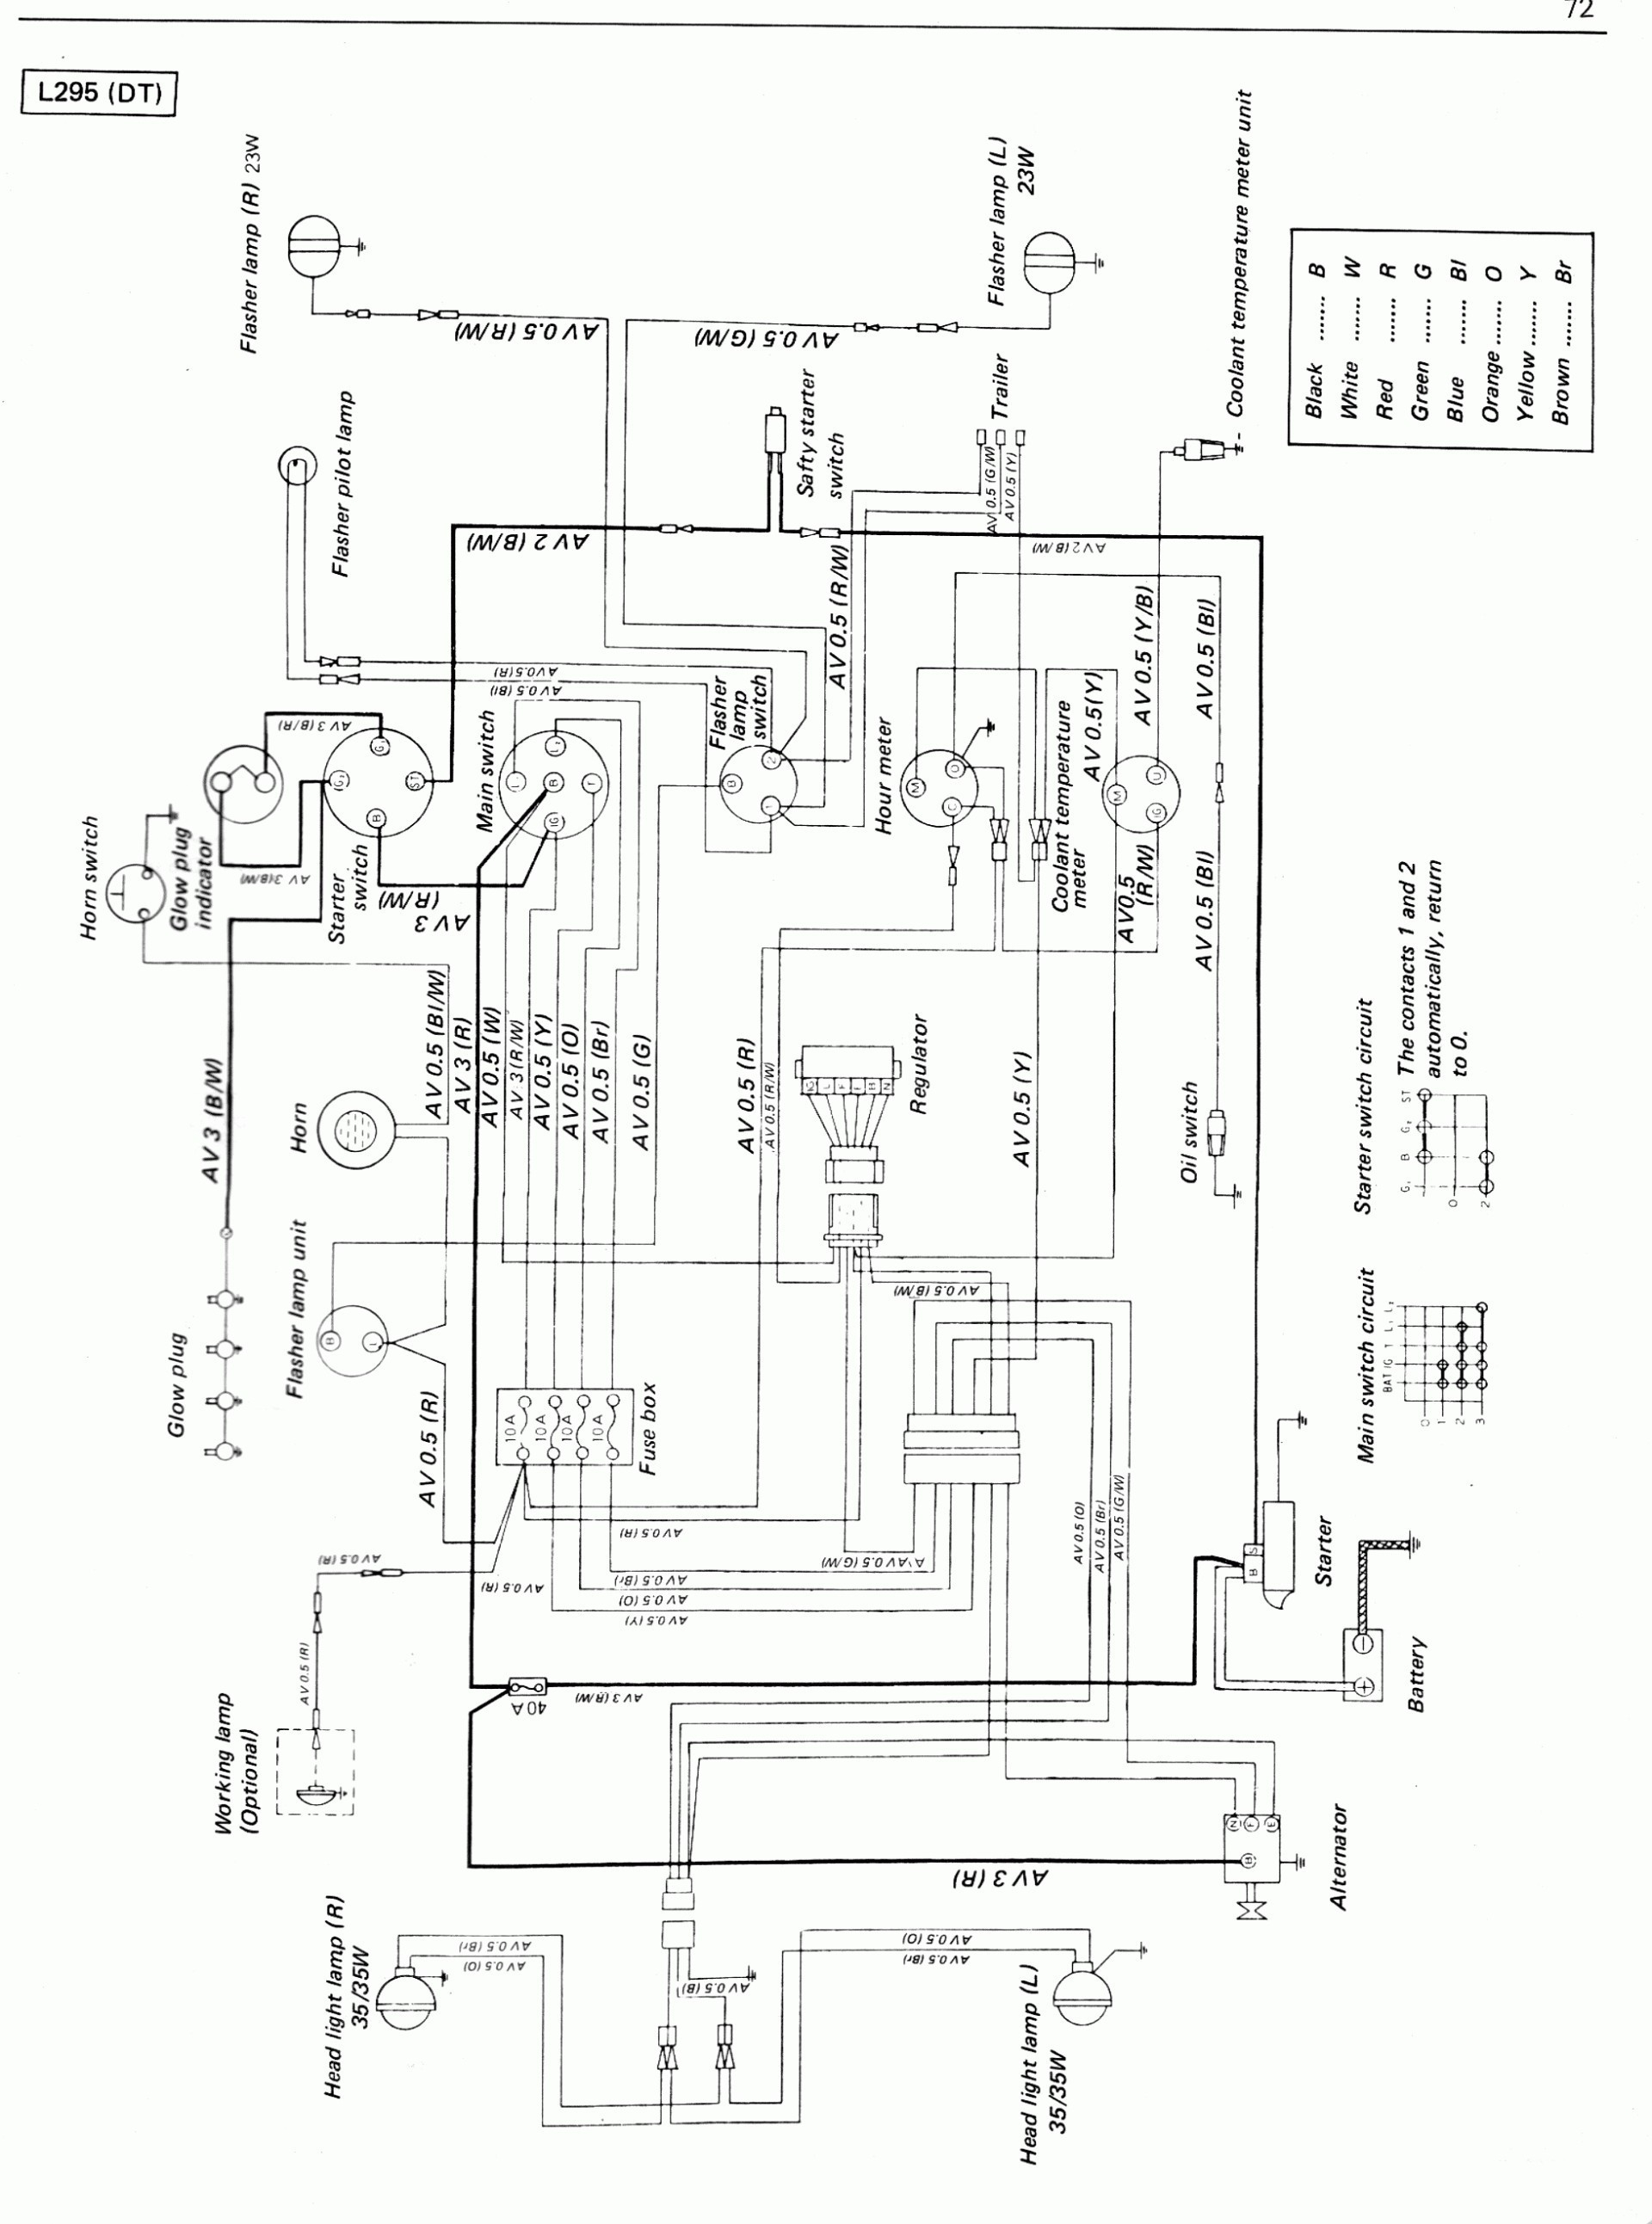 Kubota Ignition Switch Wiring Diagram